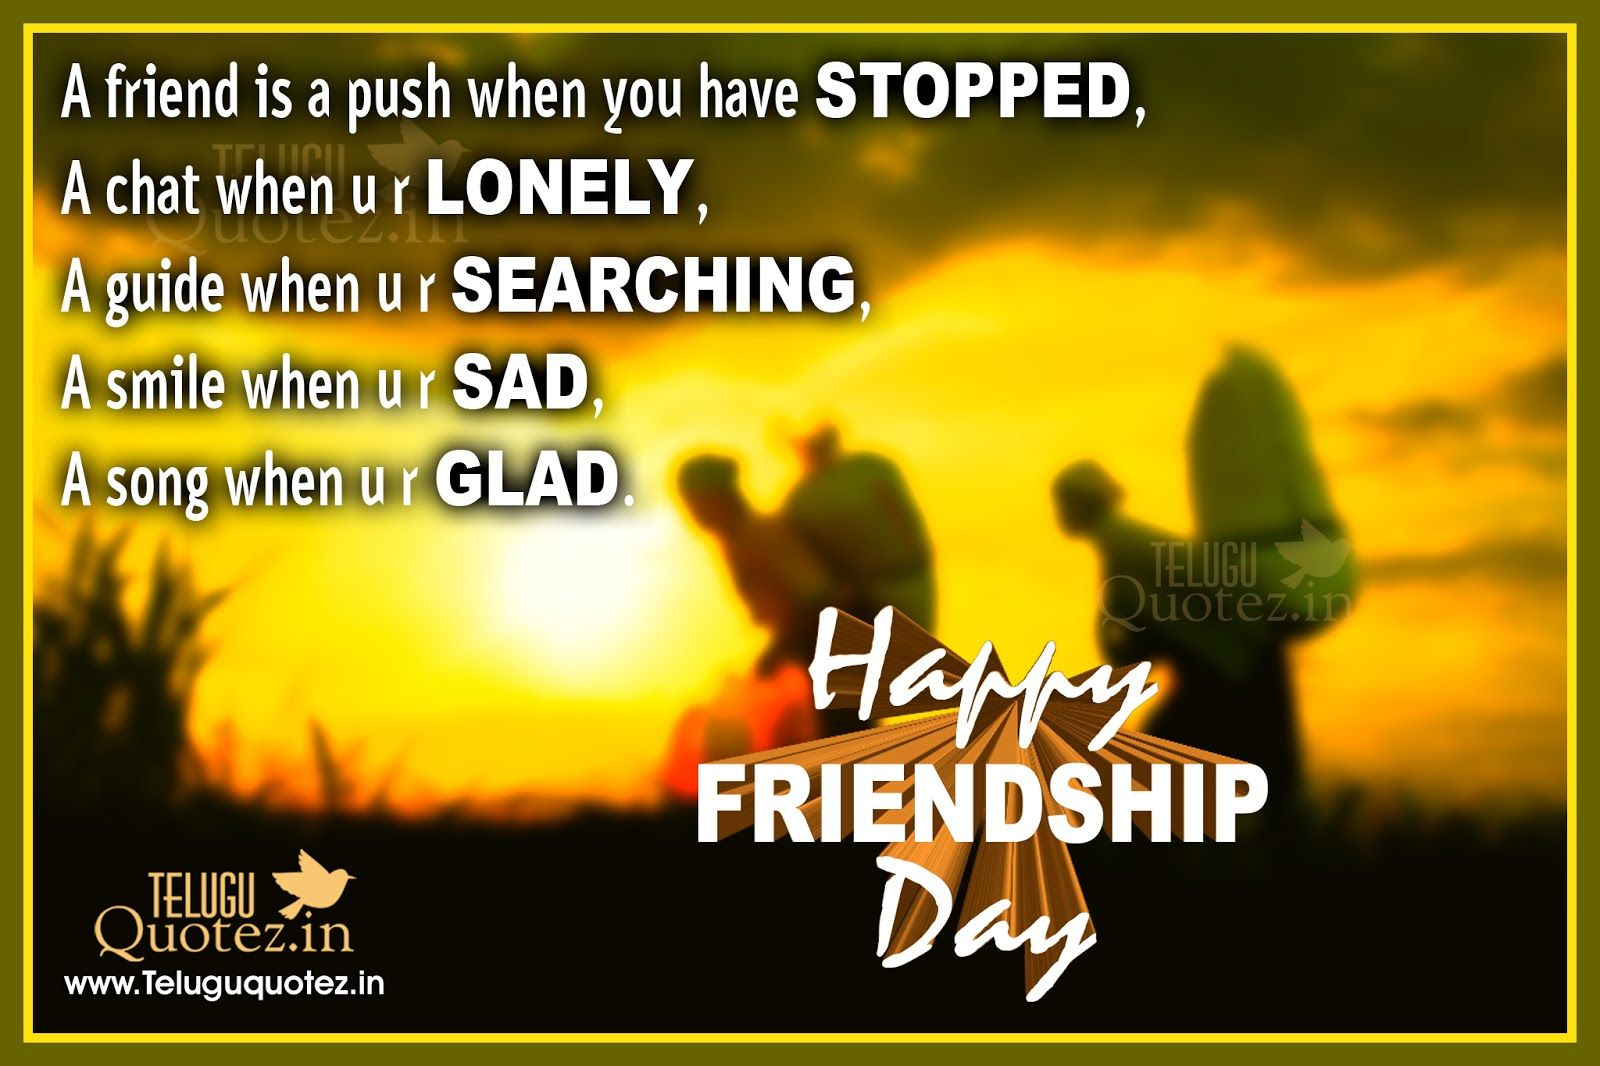 Best Friendship Day Quotes With Images In English : Happy friendship day sms quotes images teluguquotez